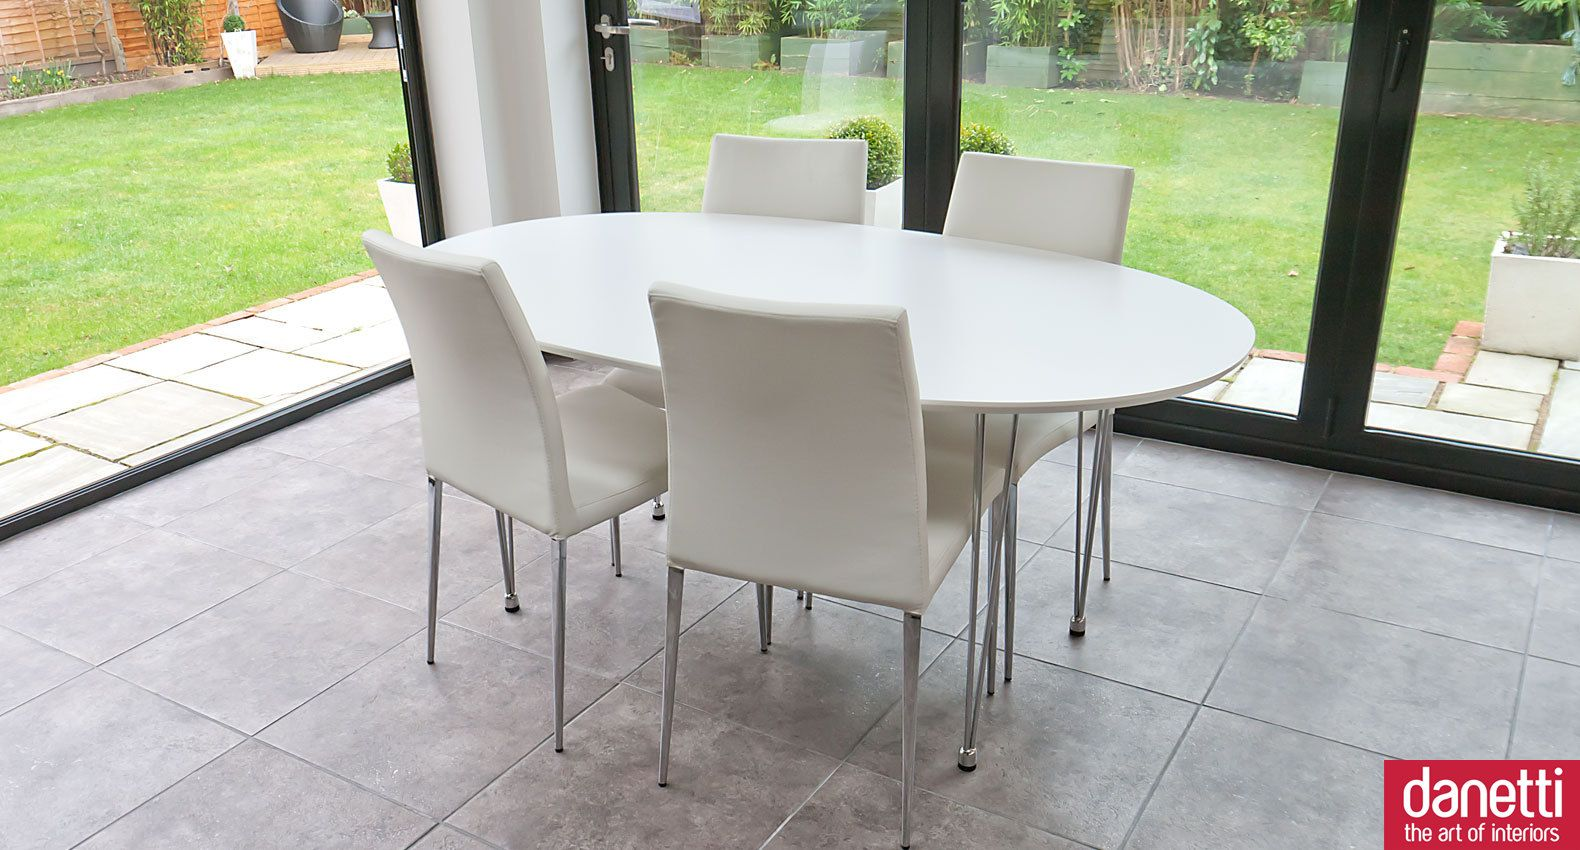 The Modern Ellie White Oval Dining Table Has A Smooth Oval Shape And Stylish Slim Legs The Tact Comfortable Dining Chairs Dining Sets Modern Oval Table Dining